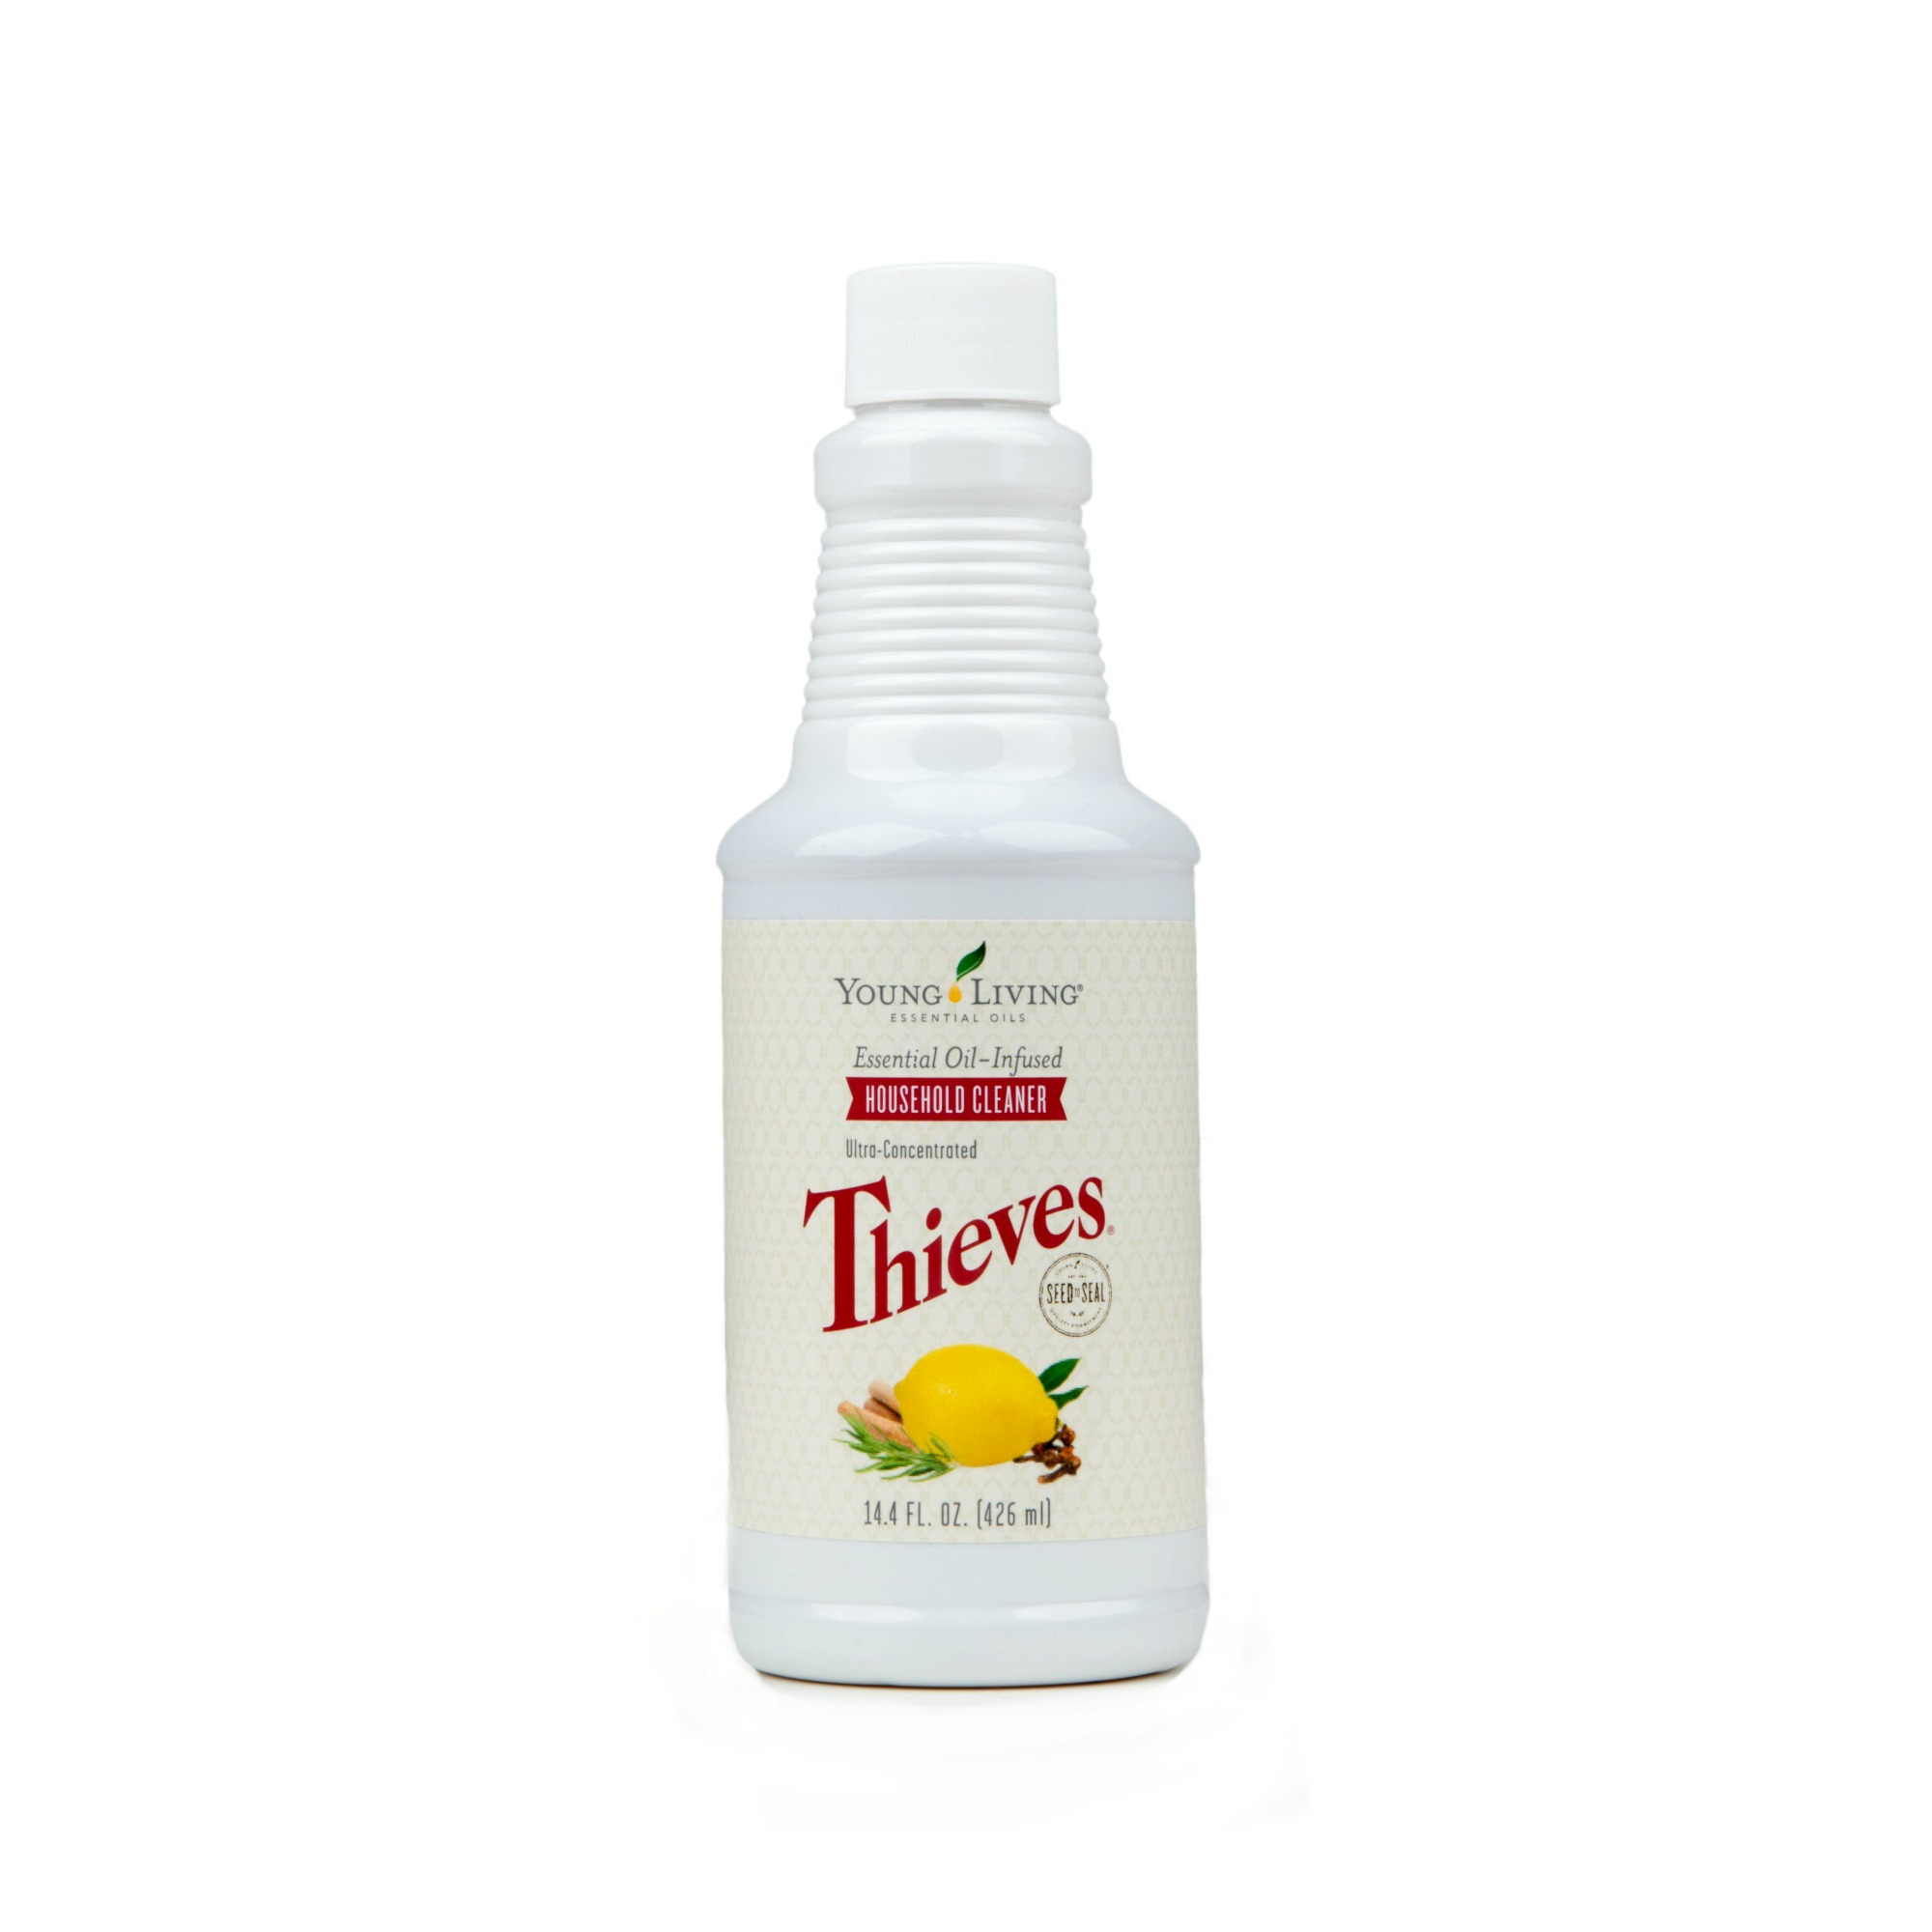 THIEVES HOUSEHOLD CLEANER    One or two capfuls of this cleaner mixed with water in a spray bottle is all you need! Cleans sinks, countertops, toilets, bathtubs, showers, and mirrors effectively and without chemicals.   Click here   to read more extensively on this product.